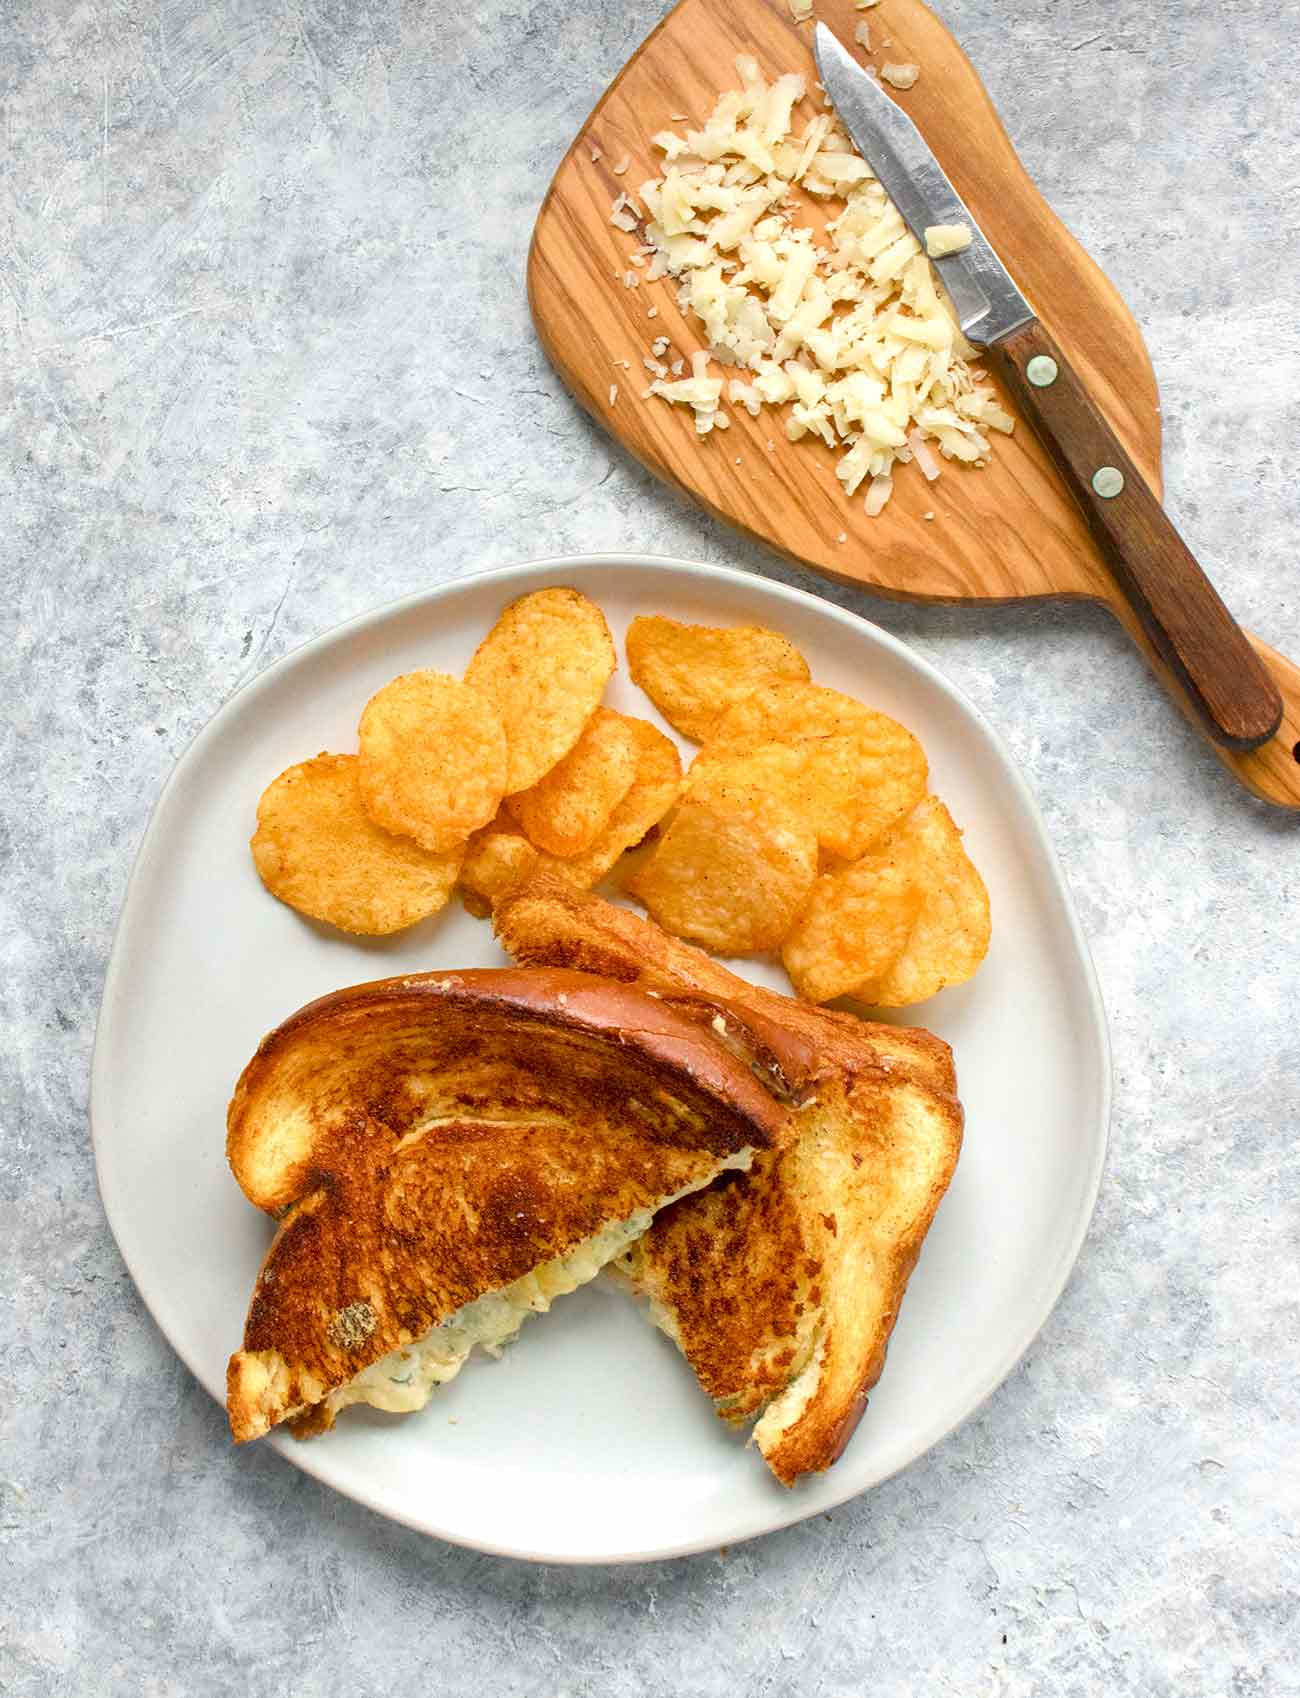 Ultimate grilled cheese sandwich on a plate with potato chips